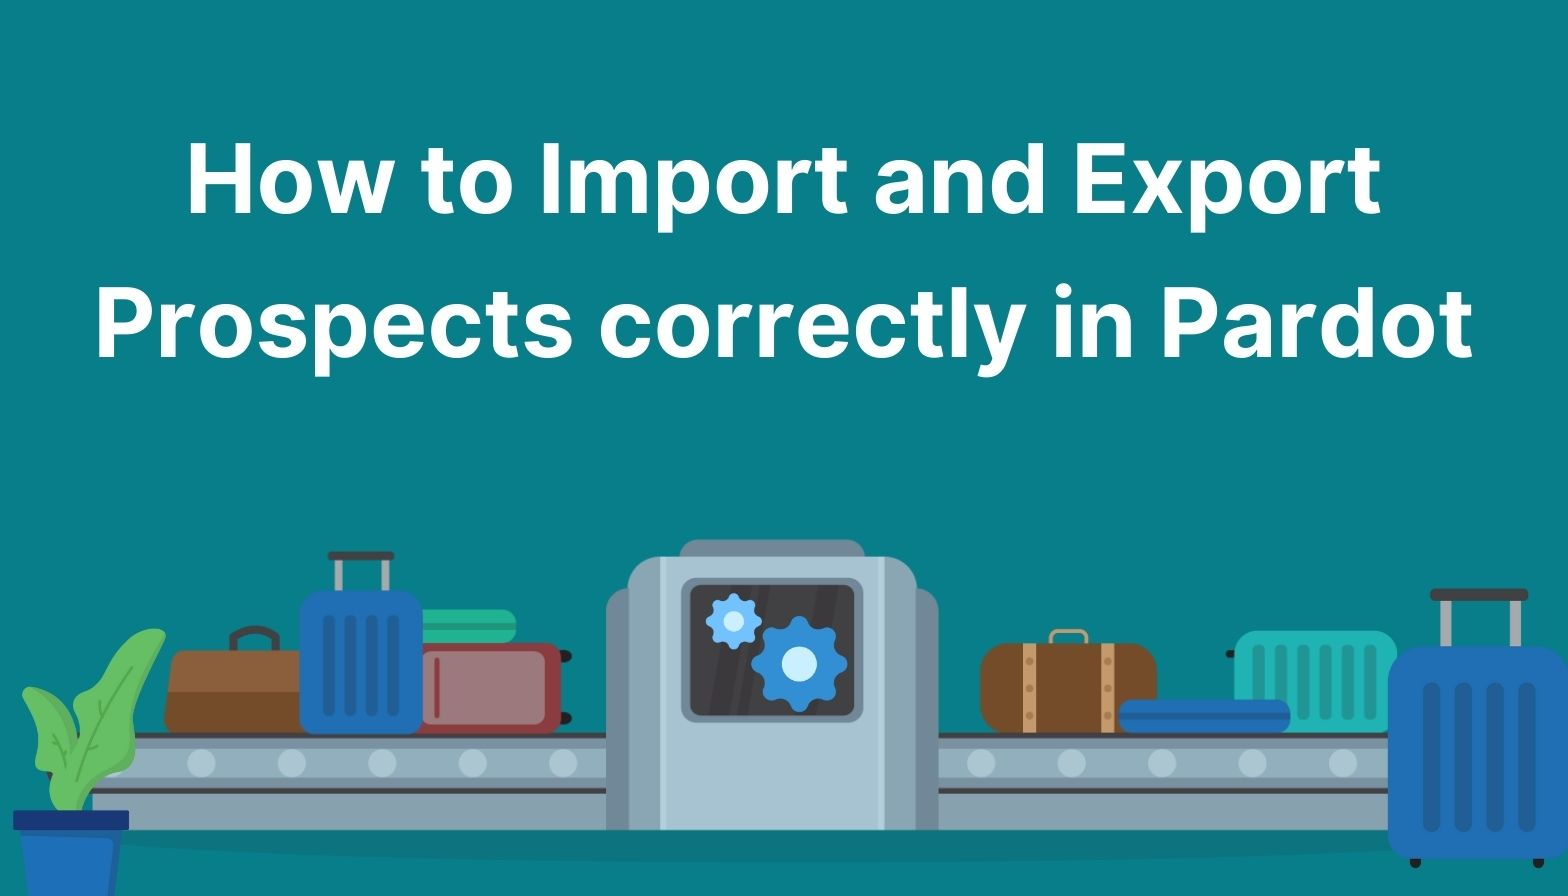 Feature image: How to import and export prospects correctly in Pardot